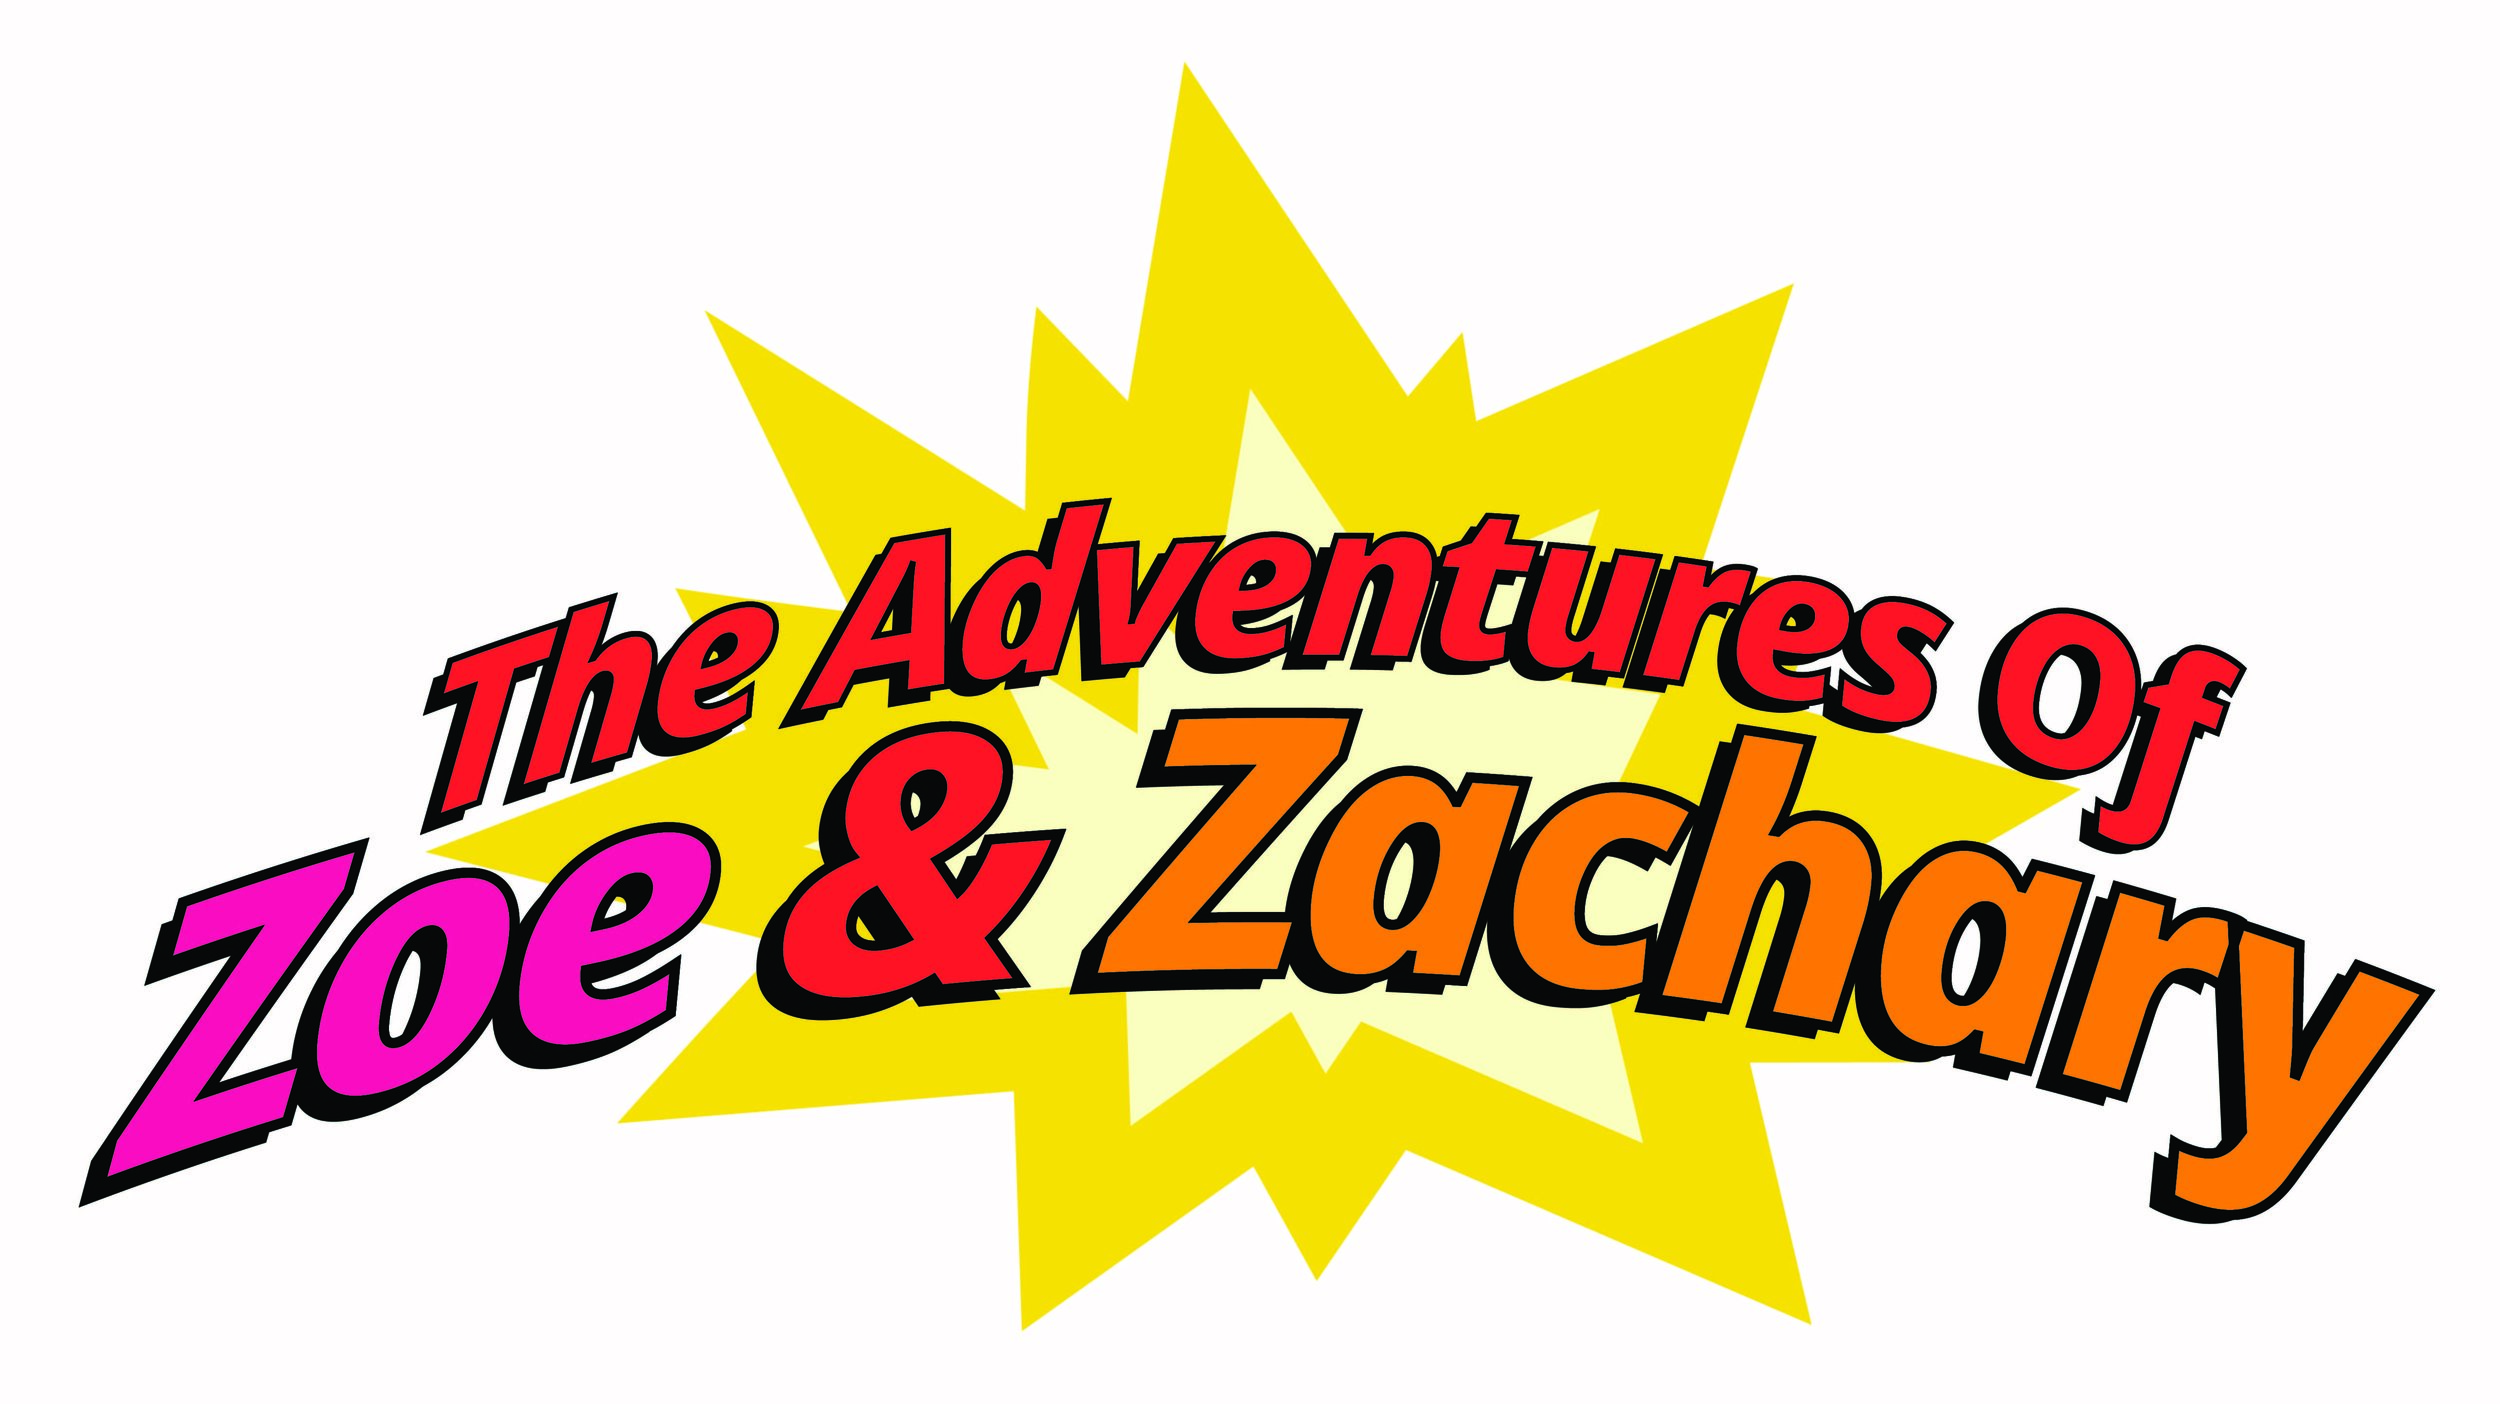 The Adventures of Zoe & Zachary - The Adventures of Zoe & Zachary is the EvyDani Books flagship brand. Our titles are dedicated to responsible representation of diverse main characters.